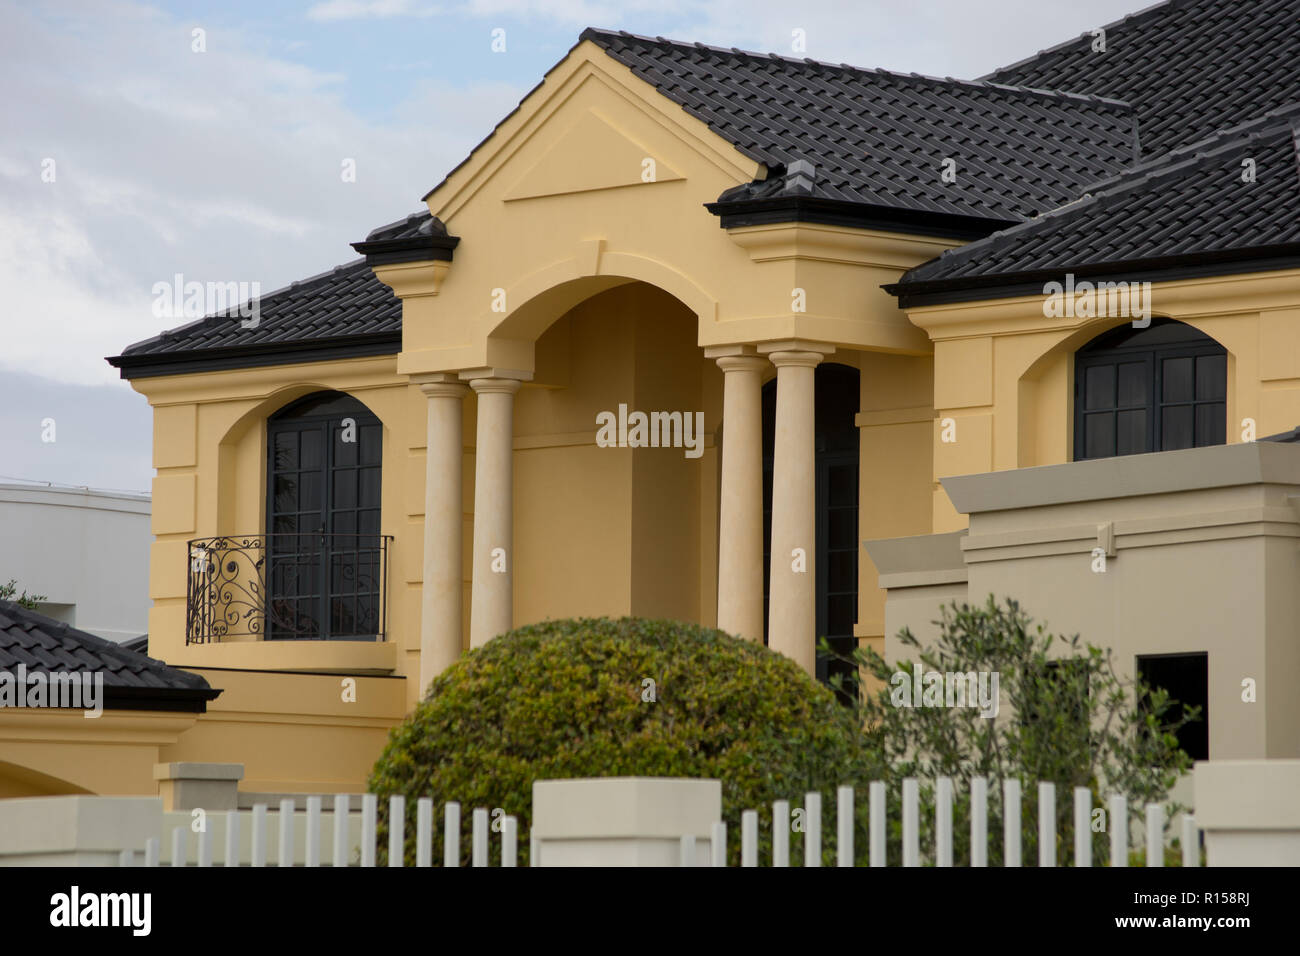 Nice Houses In Australia Stock Photo Alamy